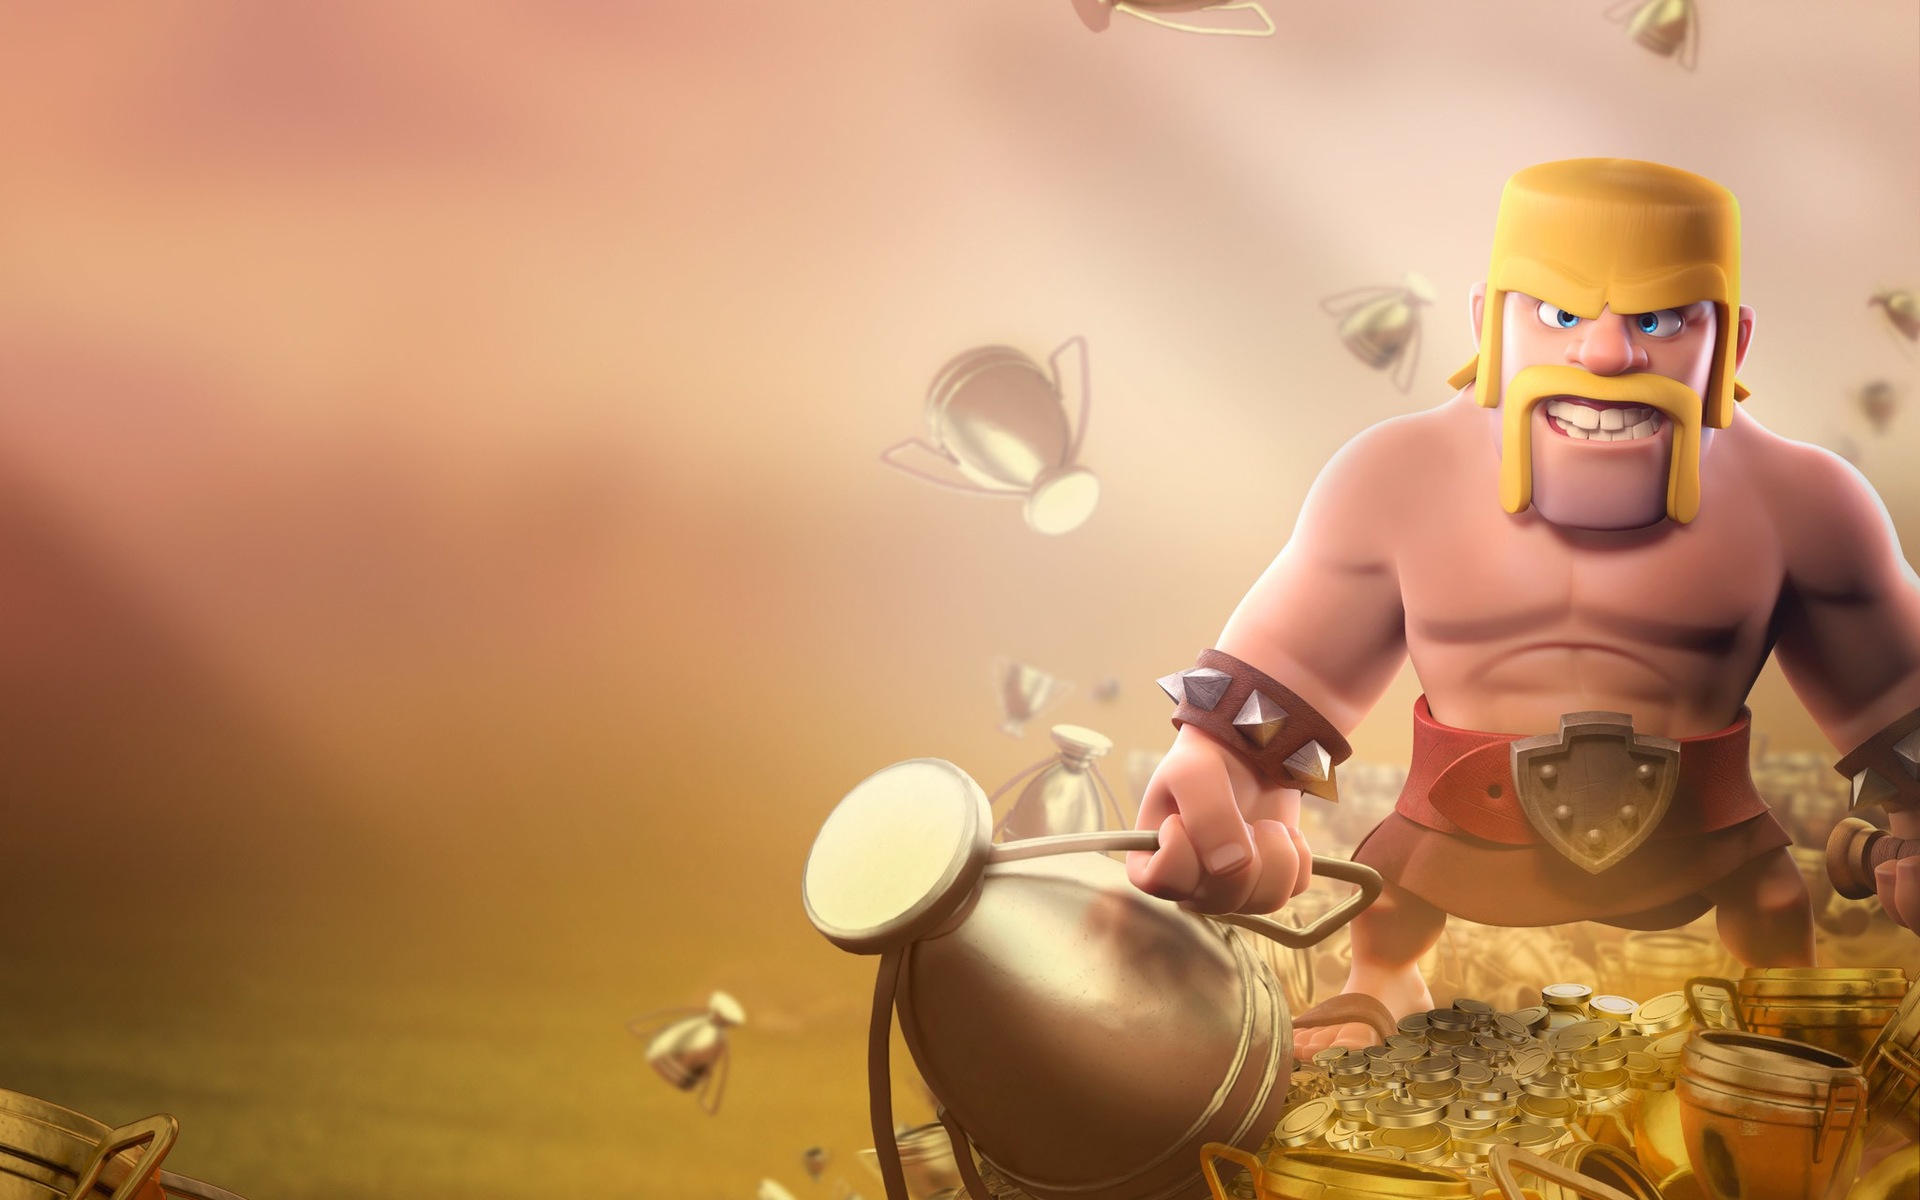 barbarian-clash-of-clans-hd-qu.jpg